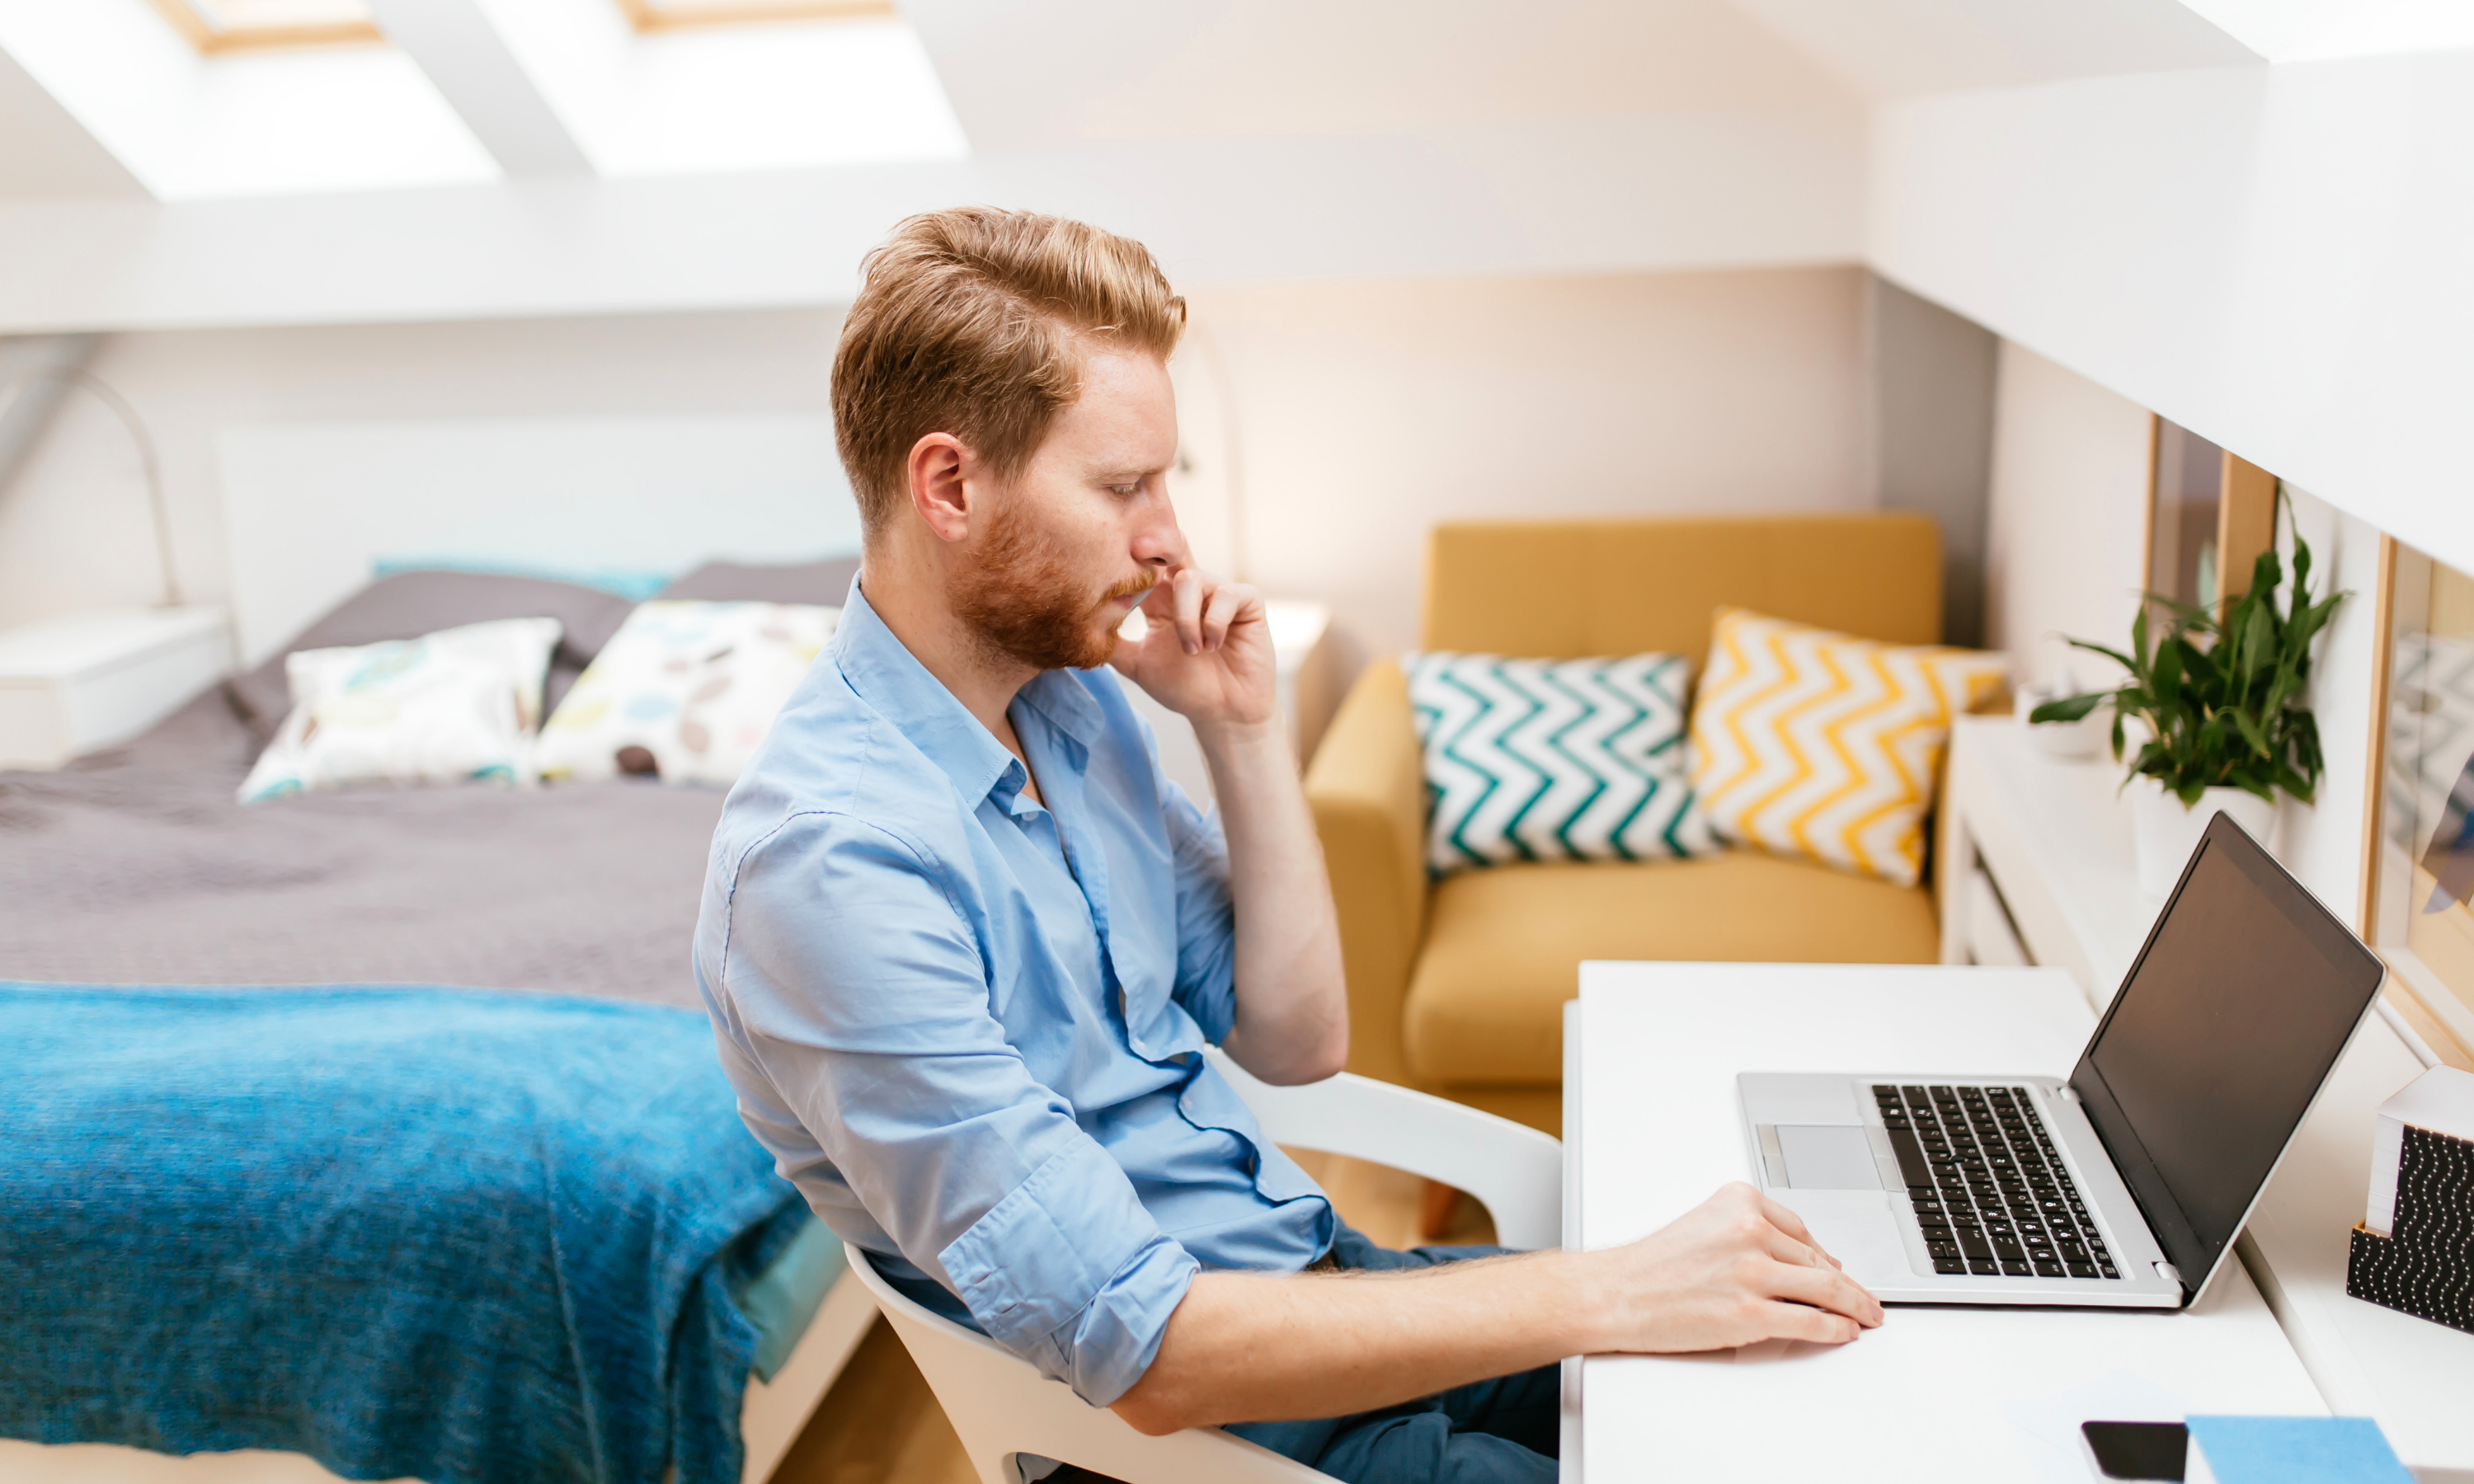 Man working from home from a vacation rental home